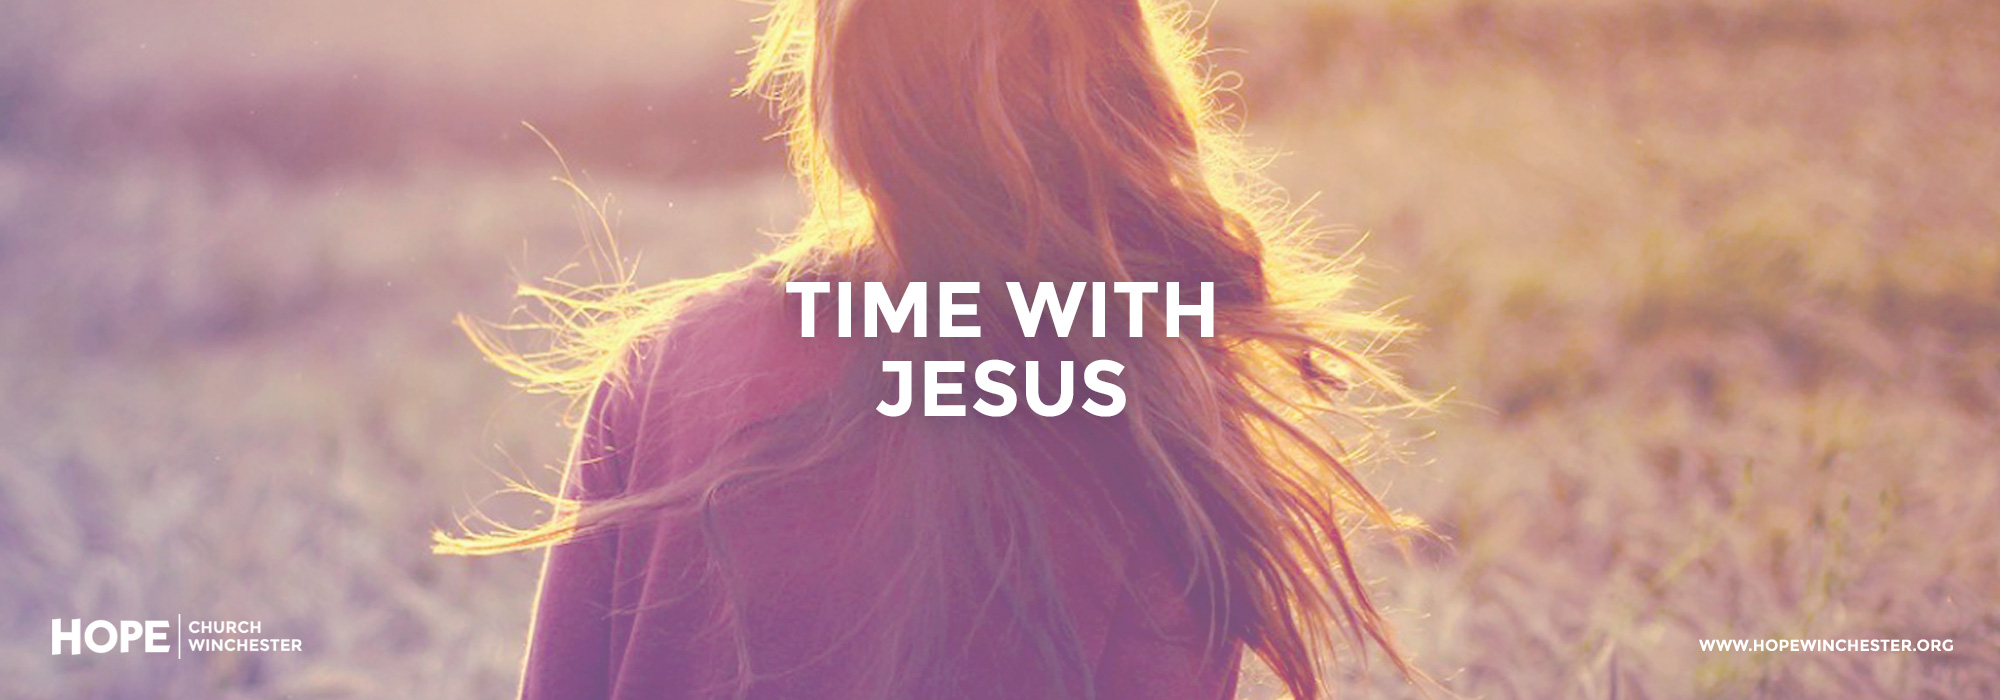 W-Events-TimeWithJesus1